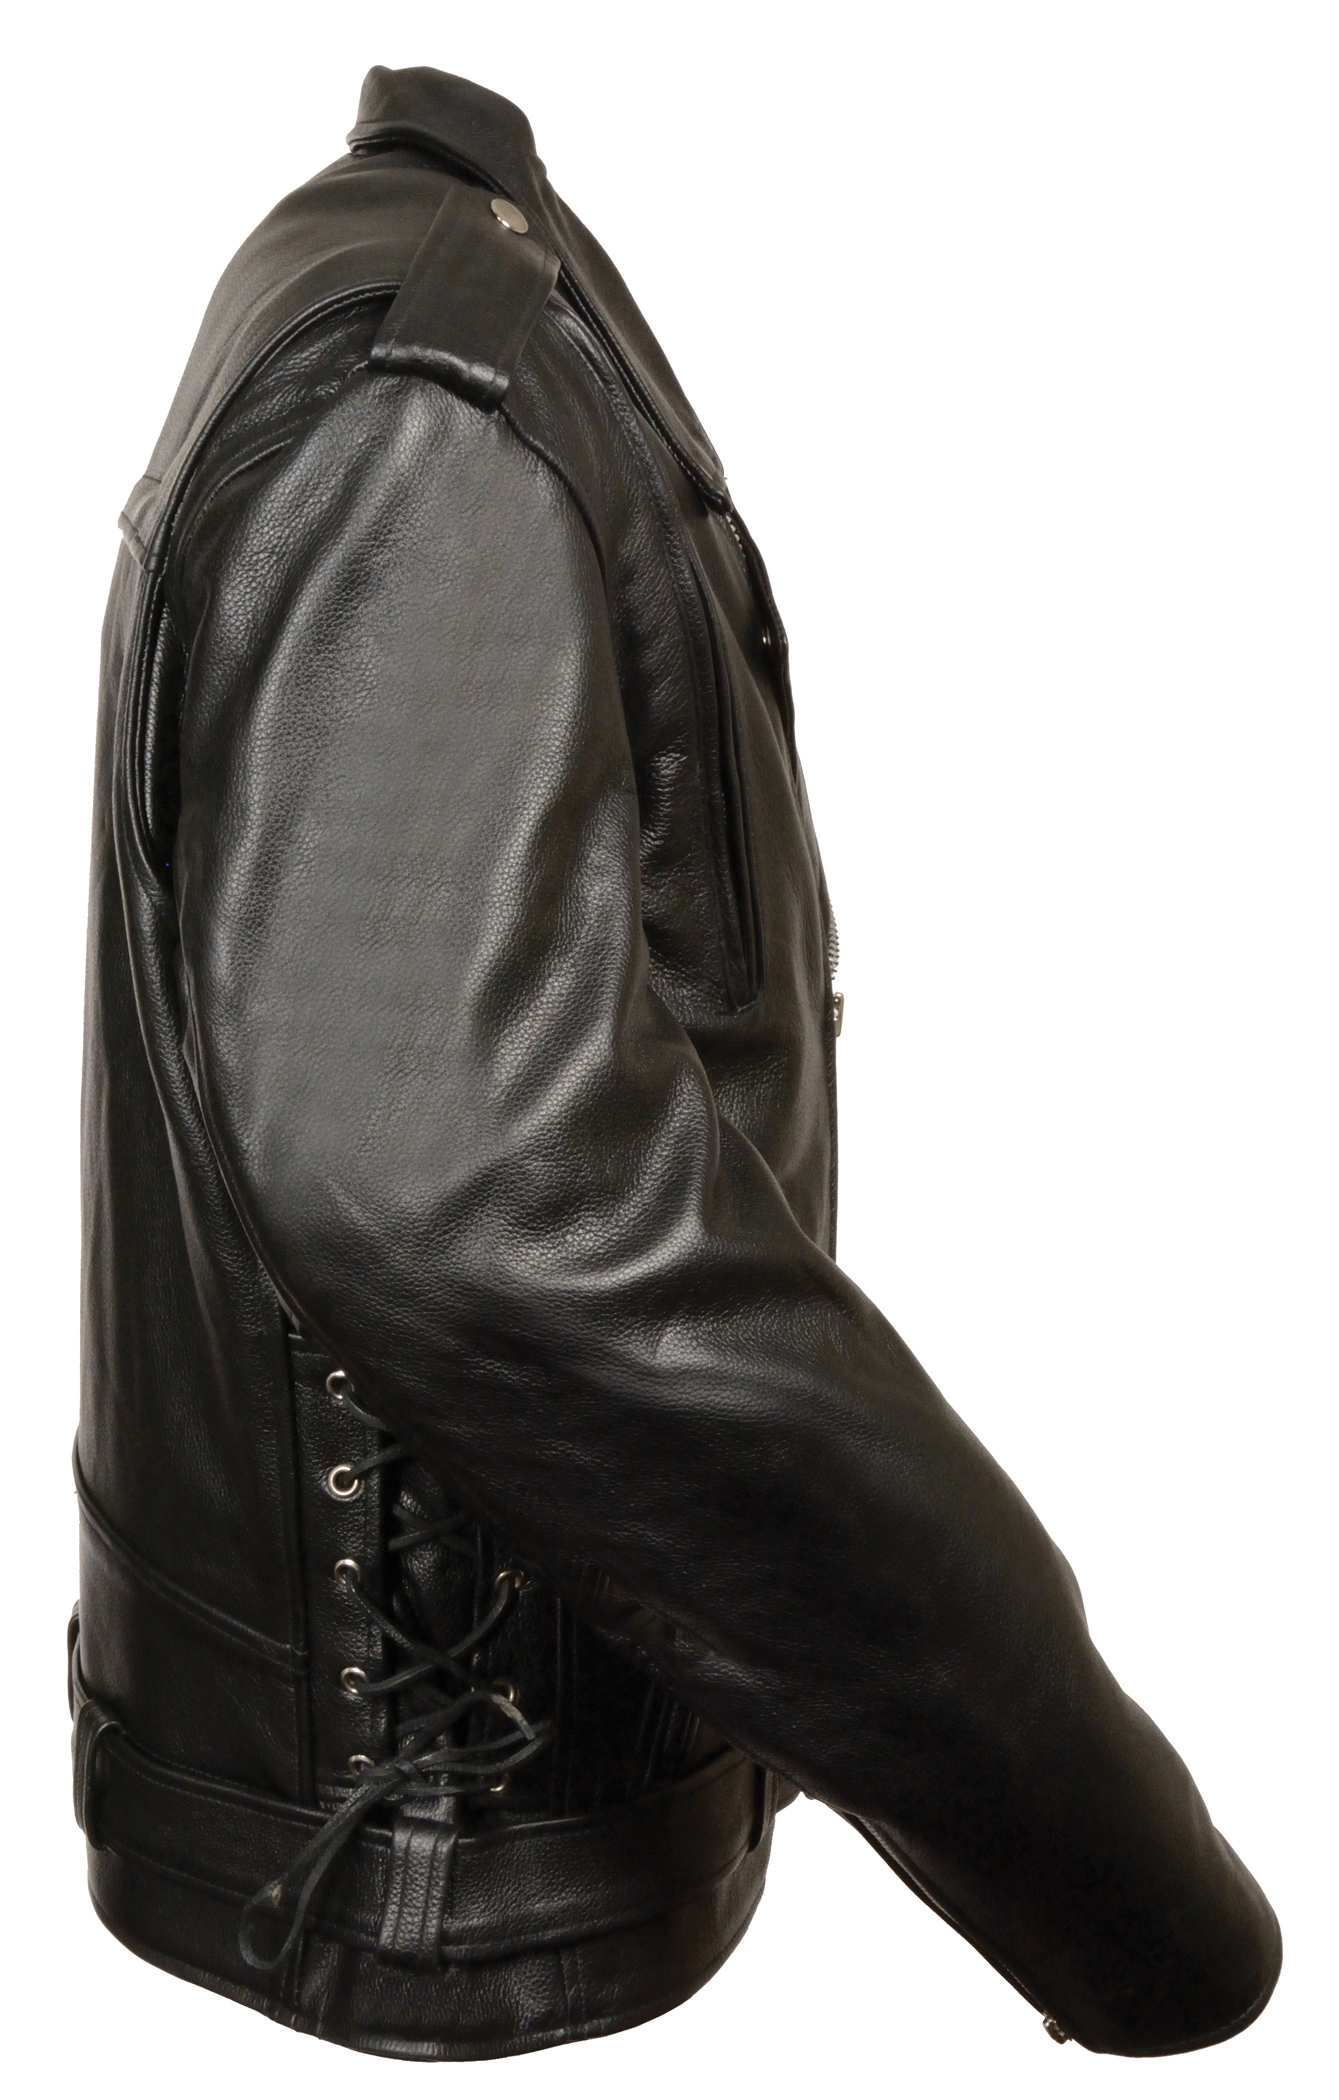 59d6e343300a Mens Black Classic Leather Motorcycle Jacket w Side Lace and Vents